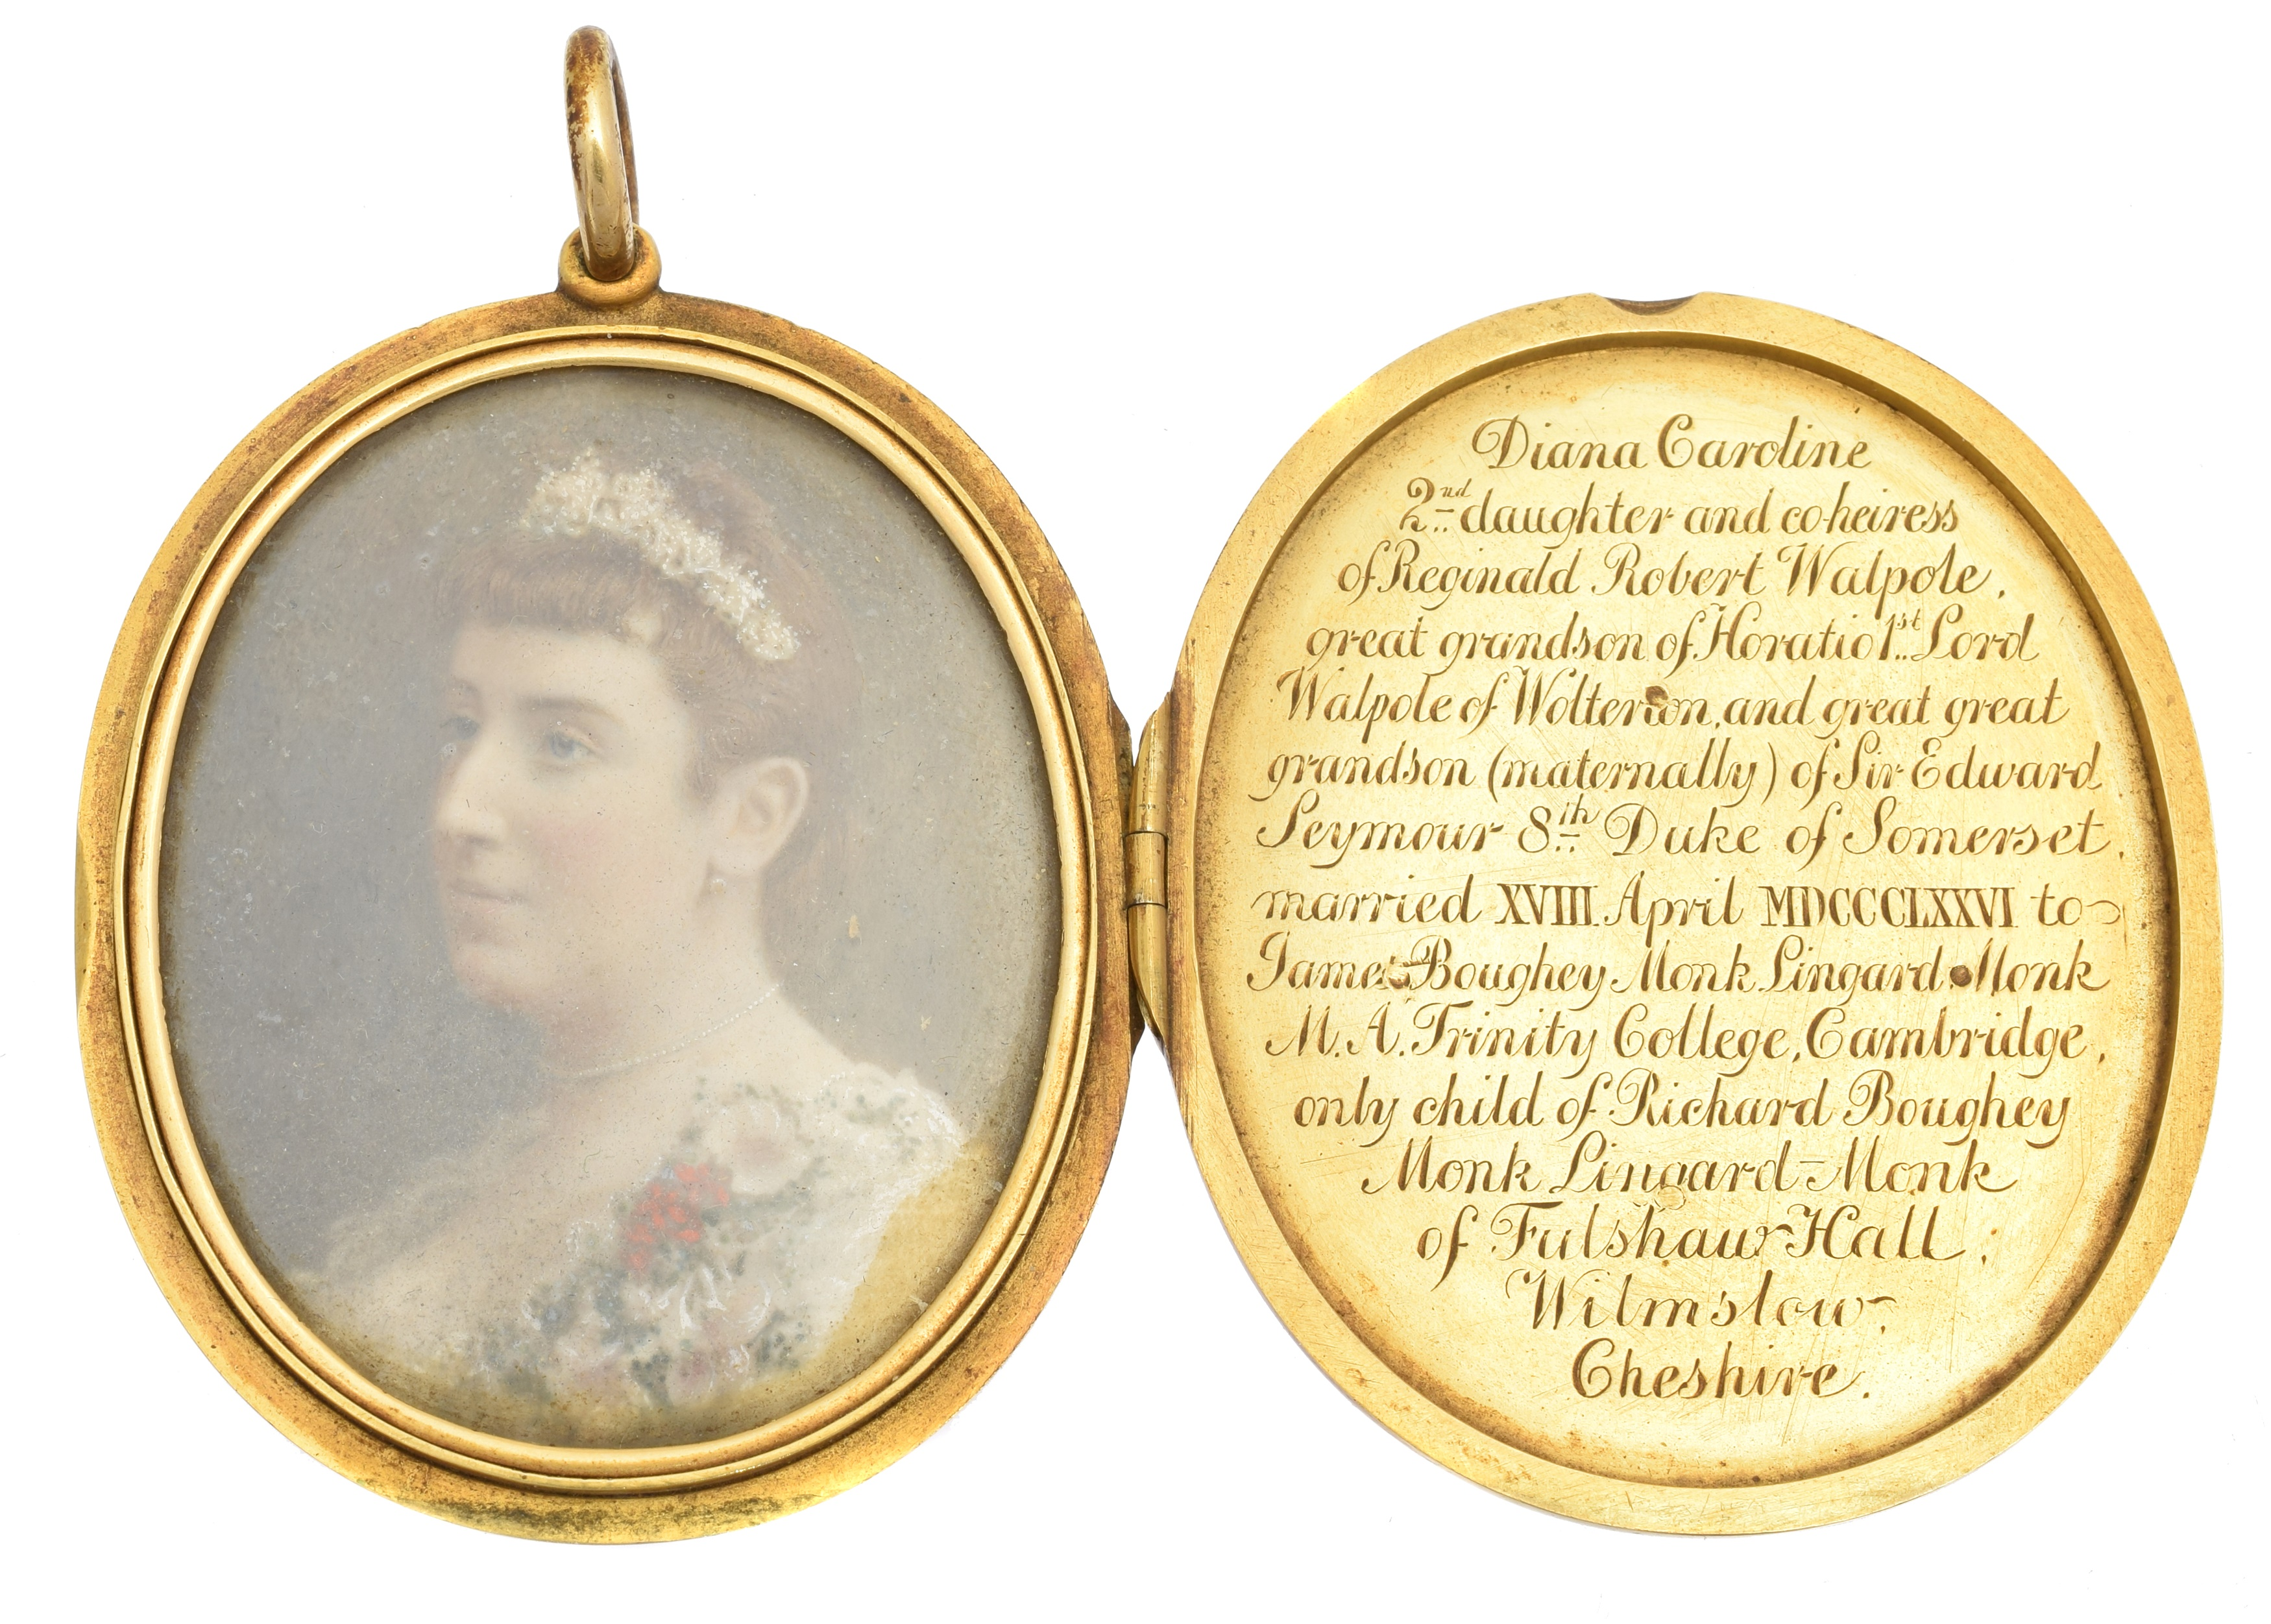 A late Victorian 18ct gold photograph miniature locket, the oval shape hinged locket with engraved with monogram, cartouche and 'Diana' to front, and coat of arms to reverse, the locket opening to reveal a photograph miniature of Diana Caroline Walpole, with inscription reading 'Diana Caroline 2nd daughter and co-heiress of Reginald Robert Walpole, great grandson of Horatio 1st Lord Walpole of Walterton and great great grandson (maternally) of Sir Edward Seymour 8th Duke of Somerset. married XVIII April MDCCCLXXVI to James Boughey Monk Linguard Monk M.A, Trinity College, Cambridge, only child of Richard Boughey Monk Linguard-Monk of Fulshaw Hall, Wilmslow, Cheshire.' hallmarks for EK, London, 1881, length 6.7cm, gross weight 59.7g.